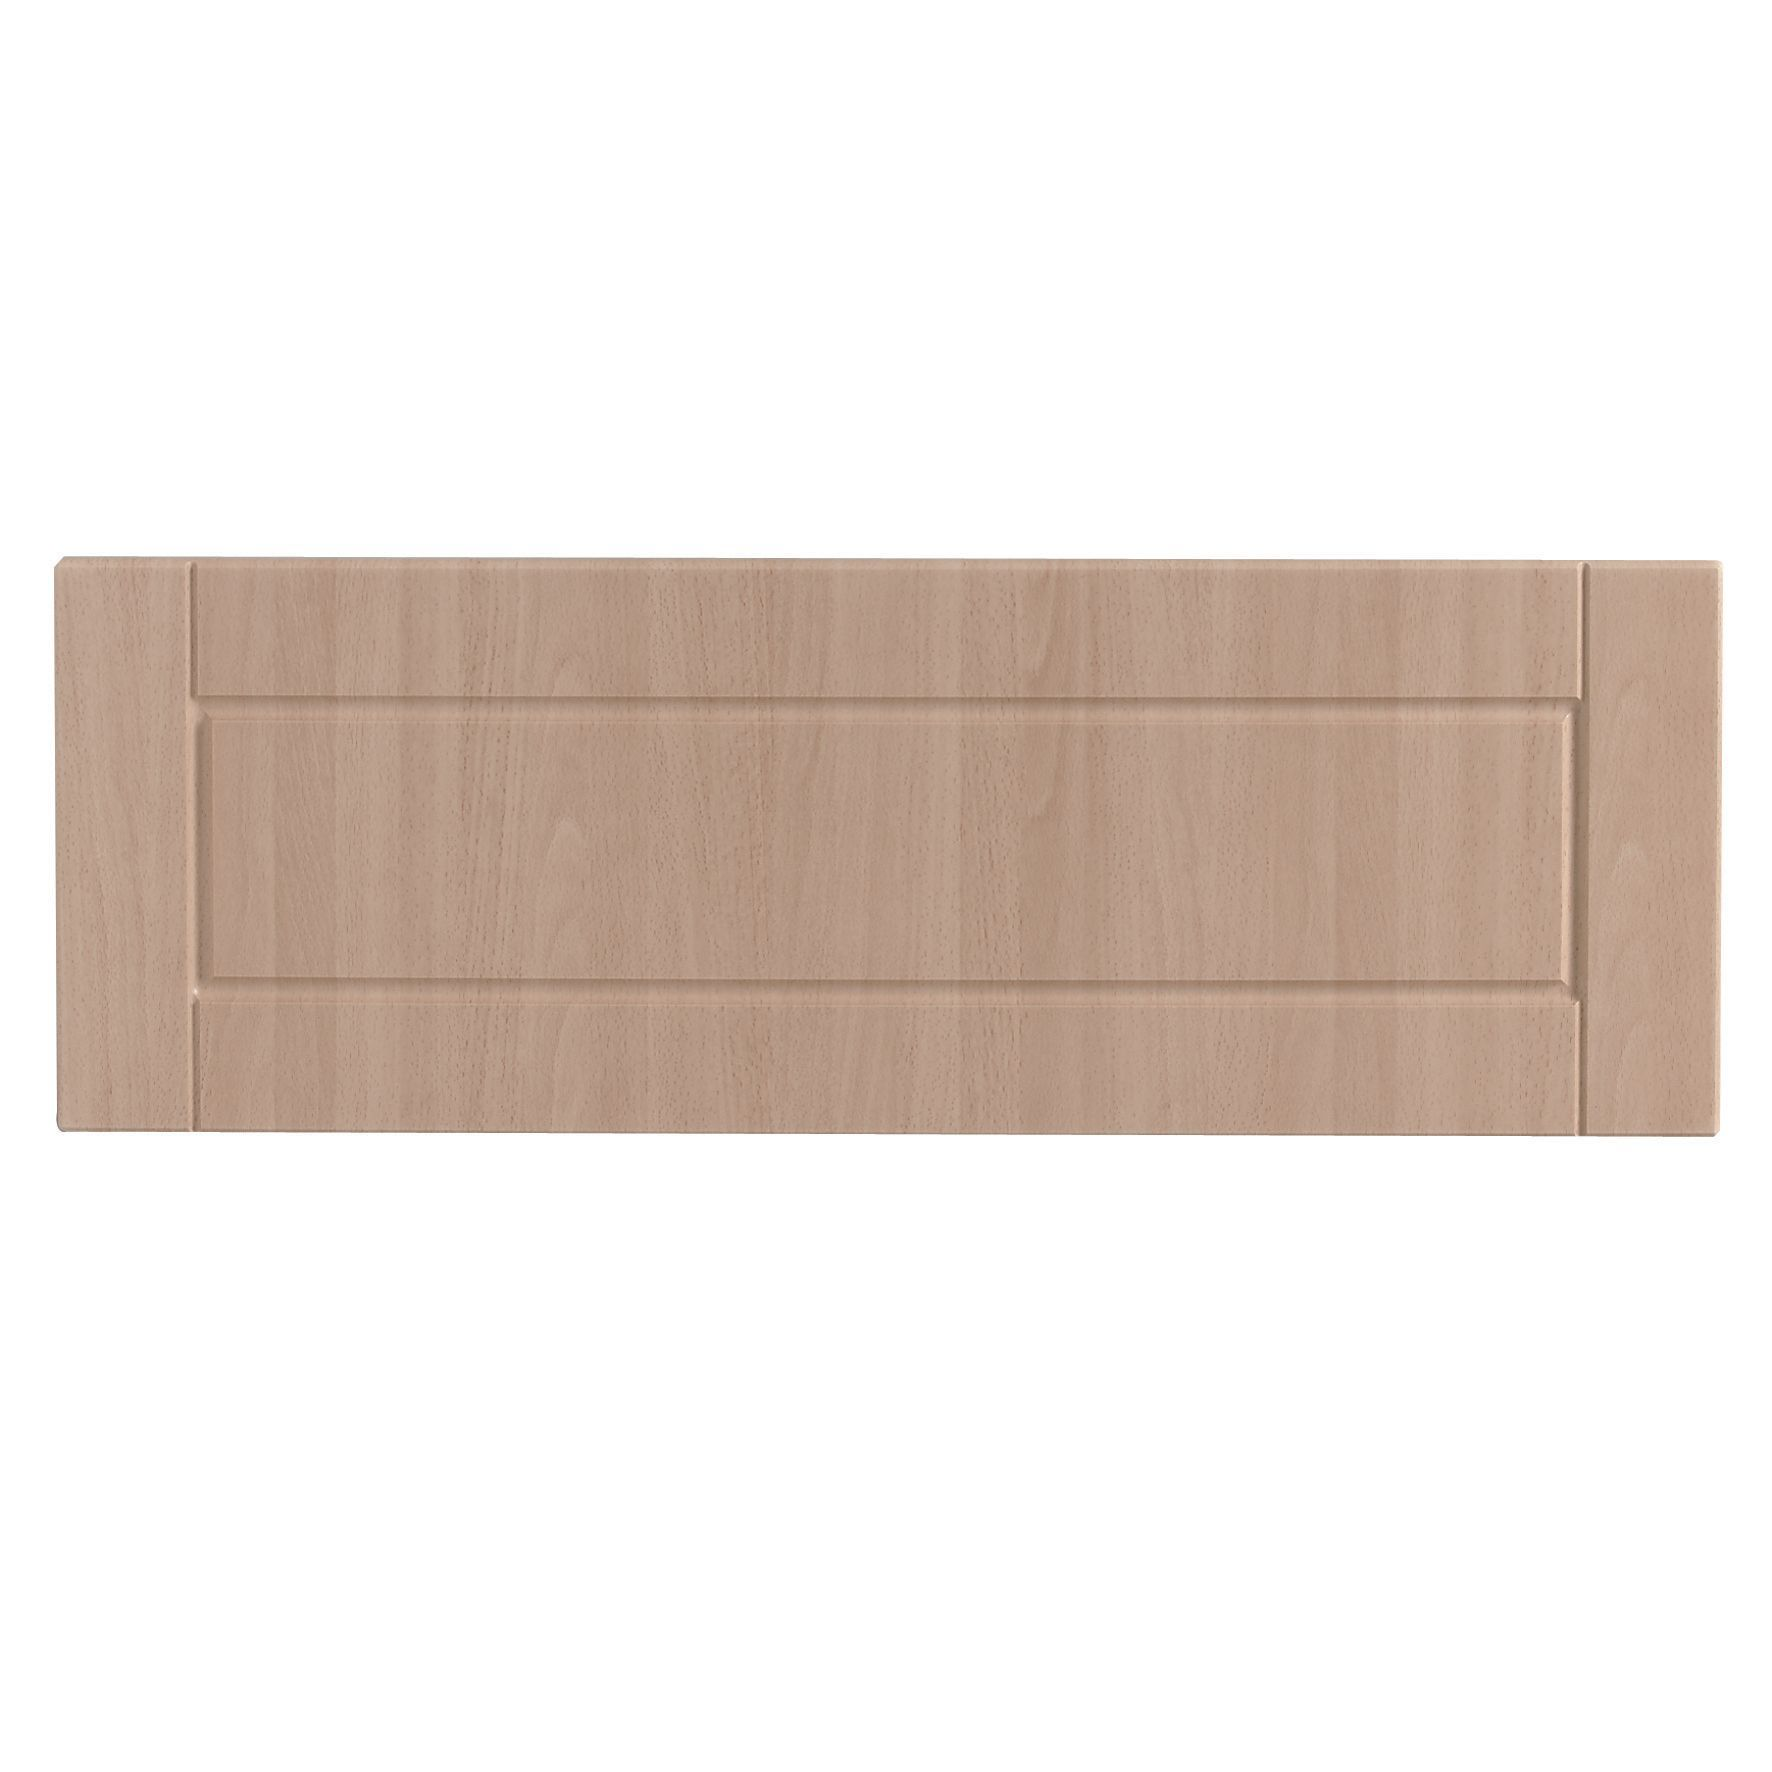 It kitchens chilton beech effect pan drawer front w 800mm for Beech effect kitchen units